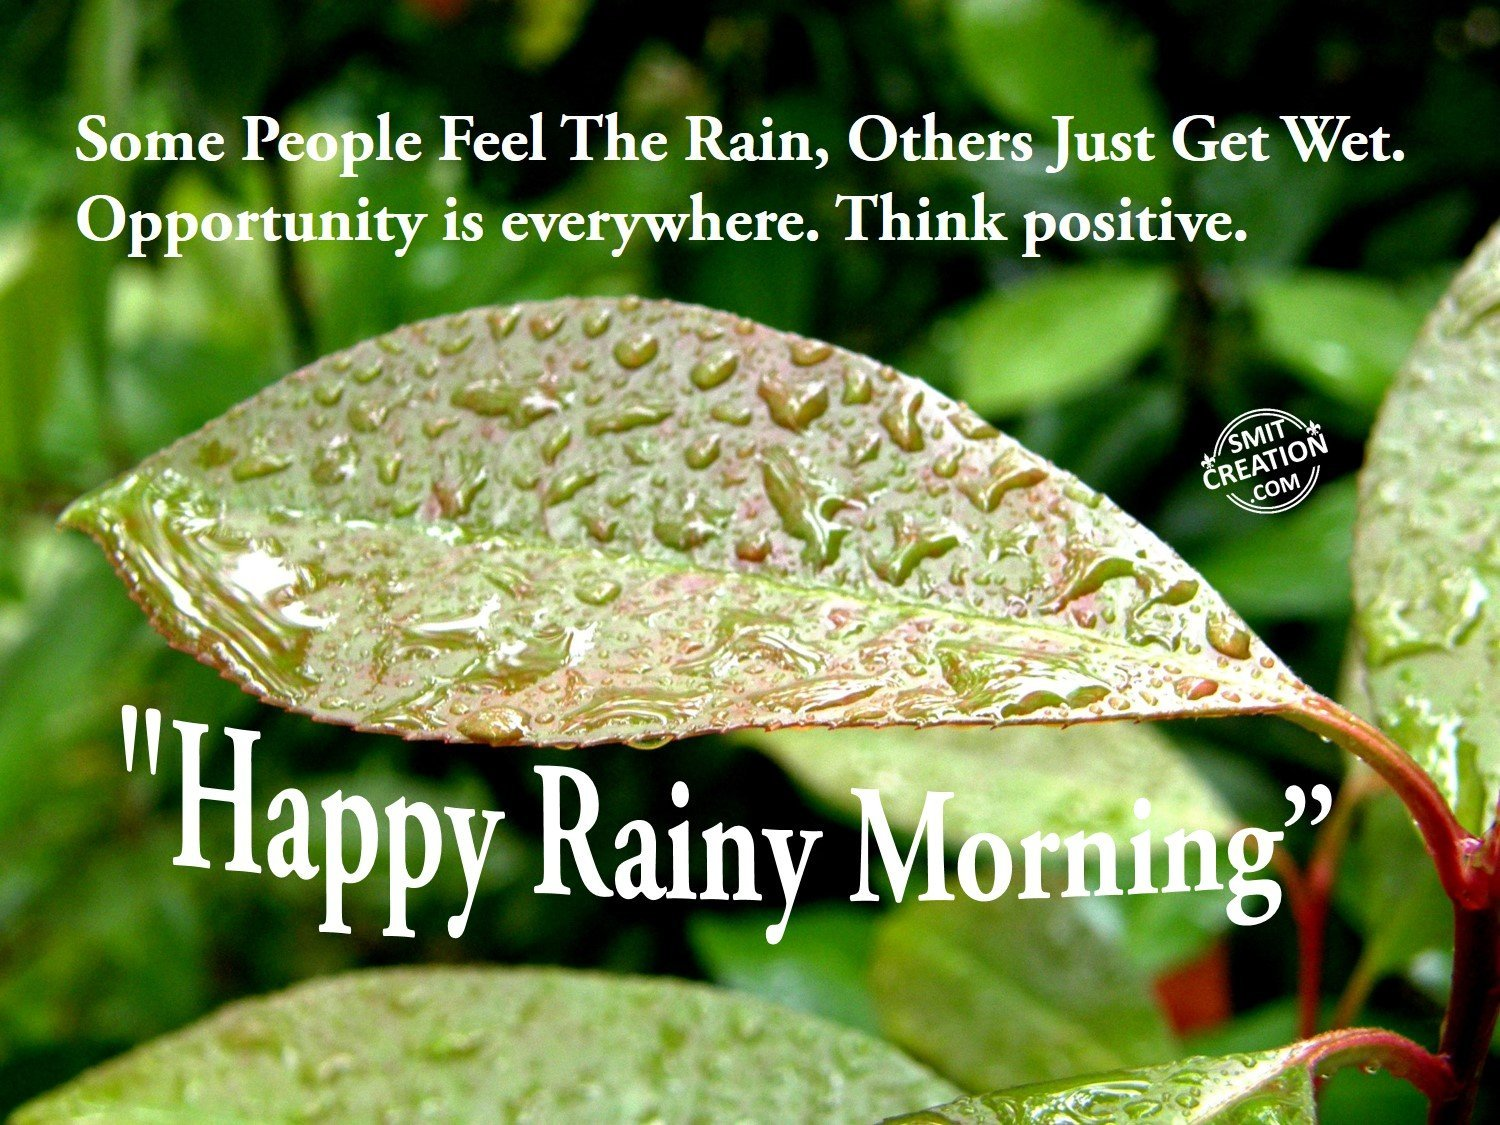 Happy rainy morning smitcreation some people feel the rain others just get wet opportunity is everywhere think positive happy rainy morning m4hsunfo